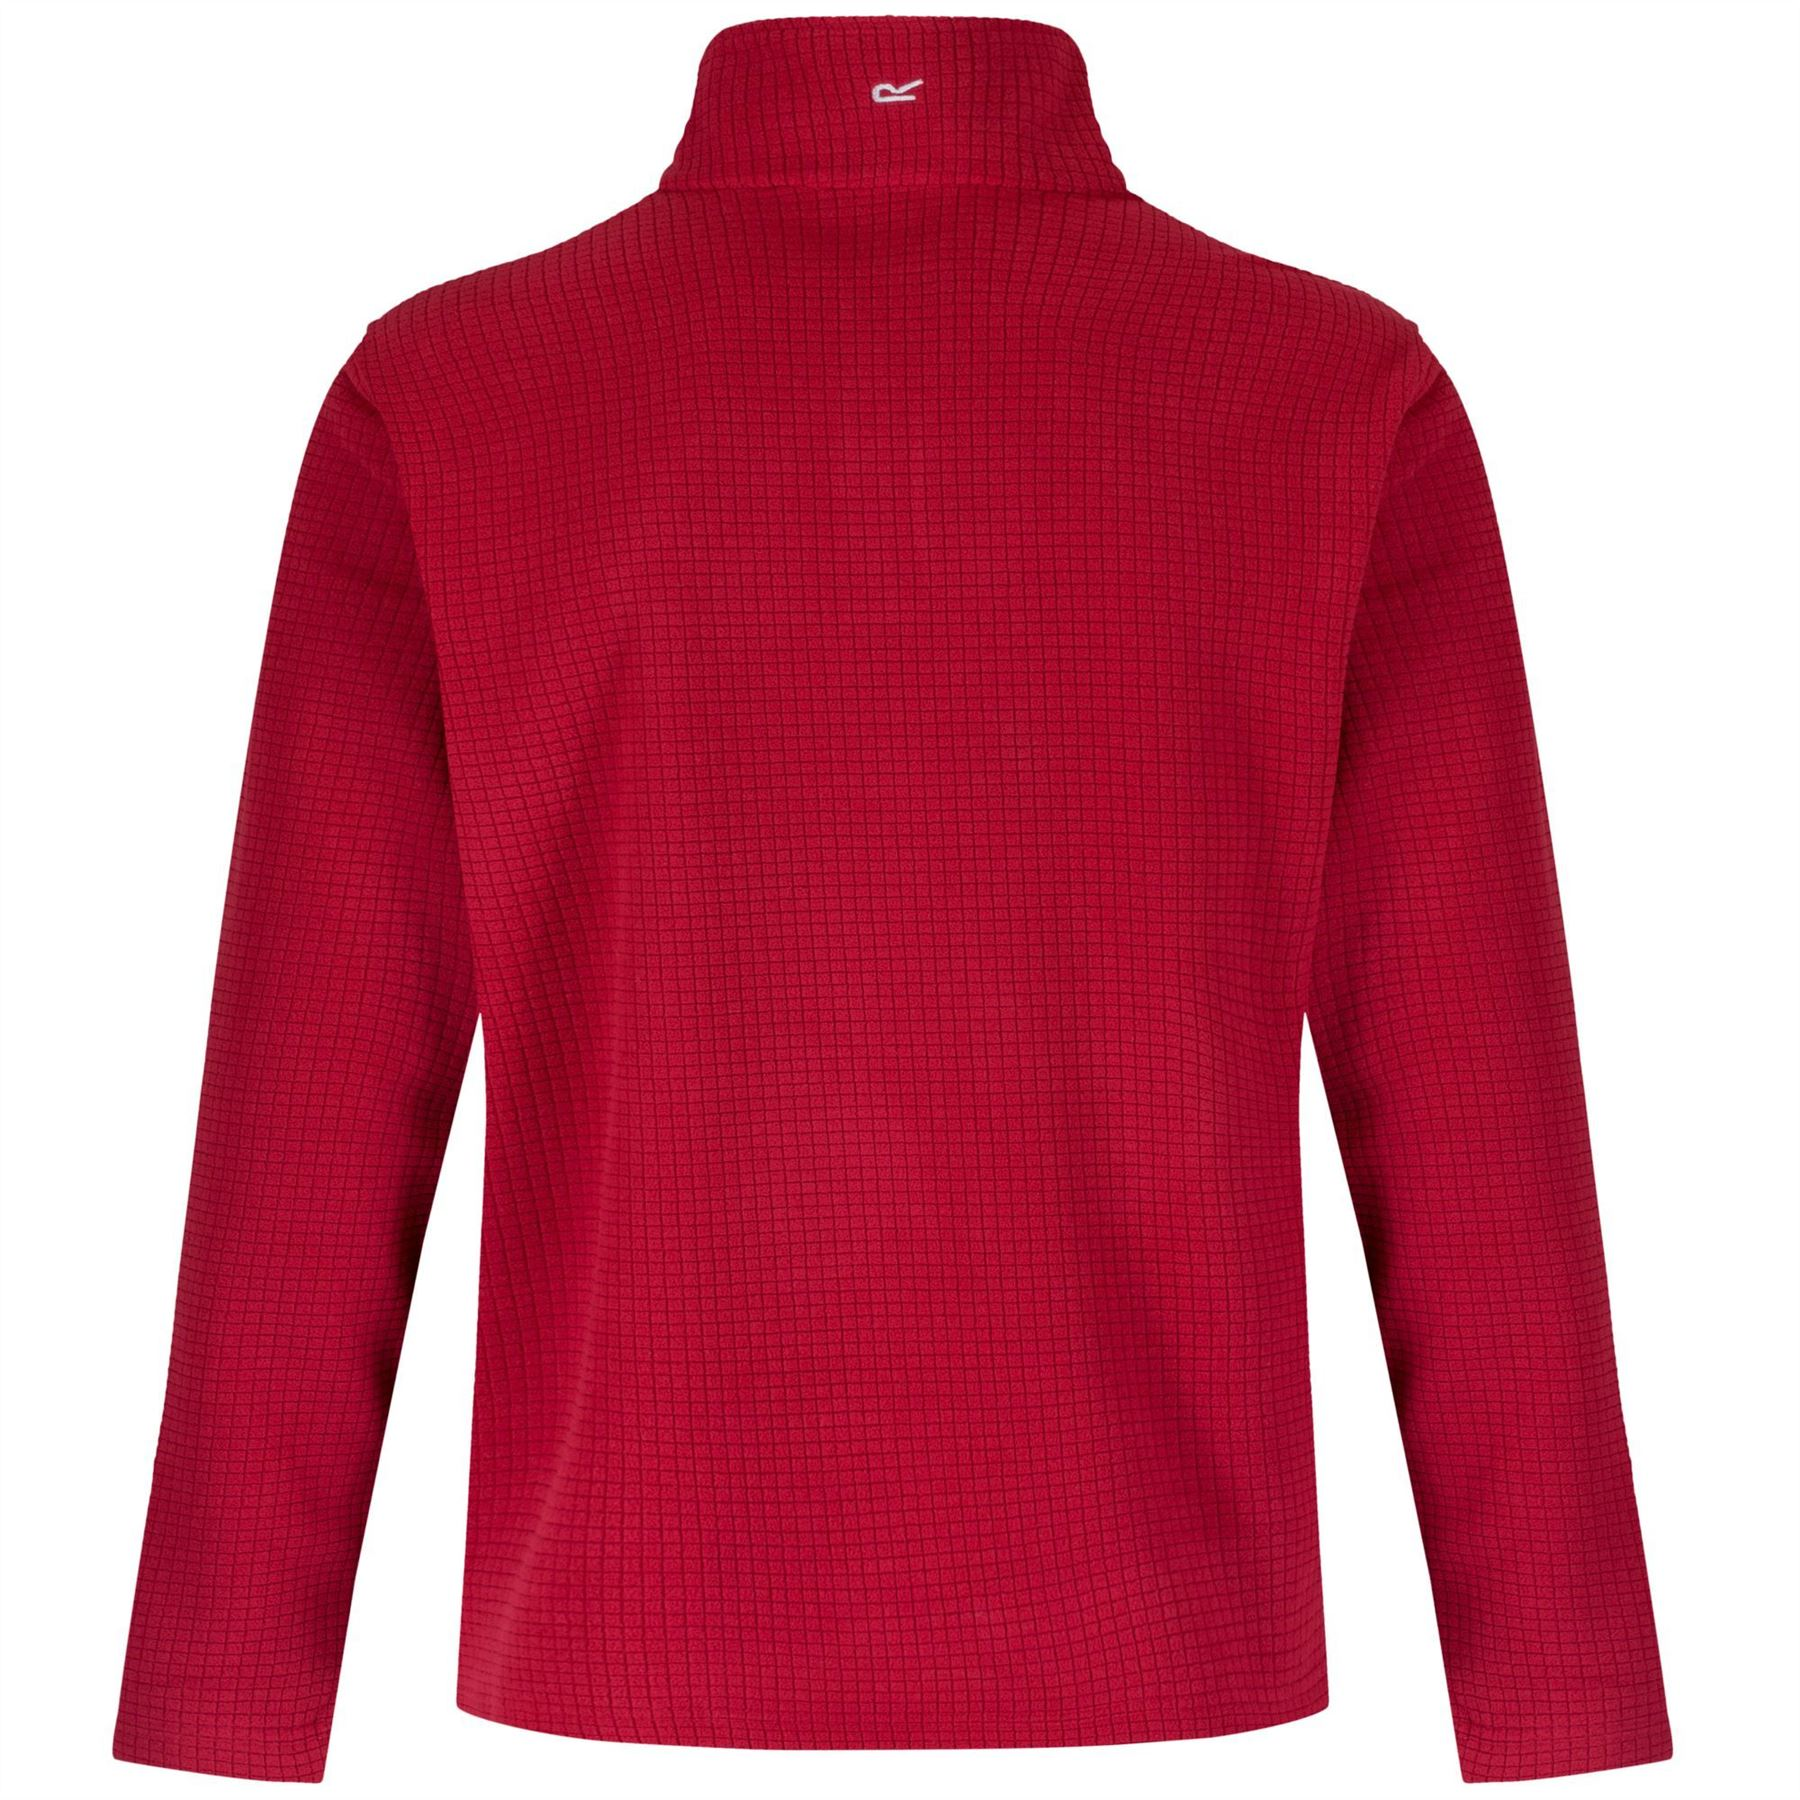 Regatta-Elgon-para-hombre-Half-Zip-Fleece-Pullover-Jumper-Top-RMA236 miniatura 11